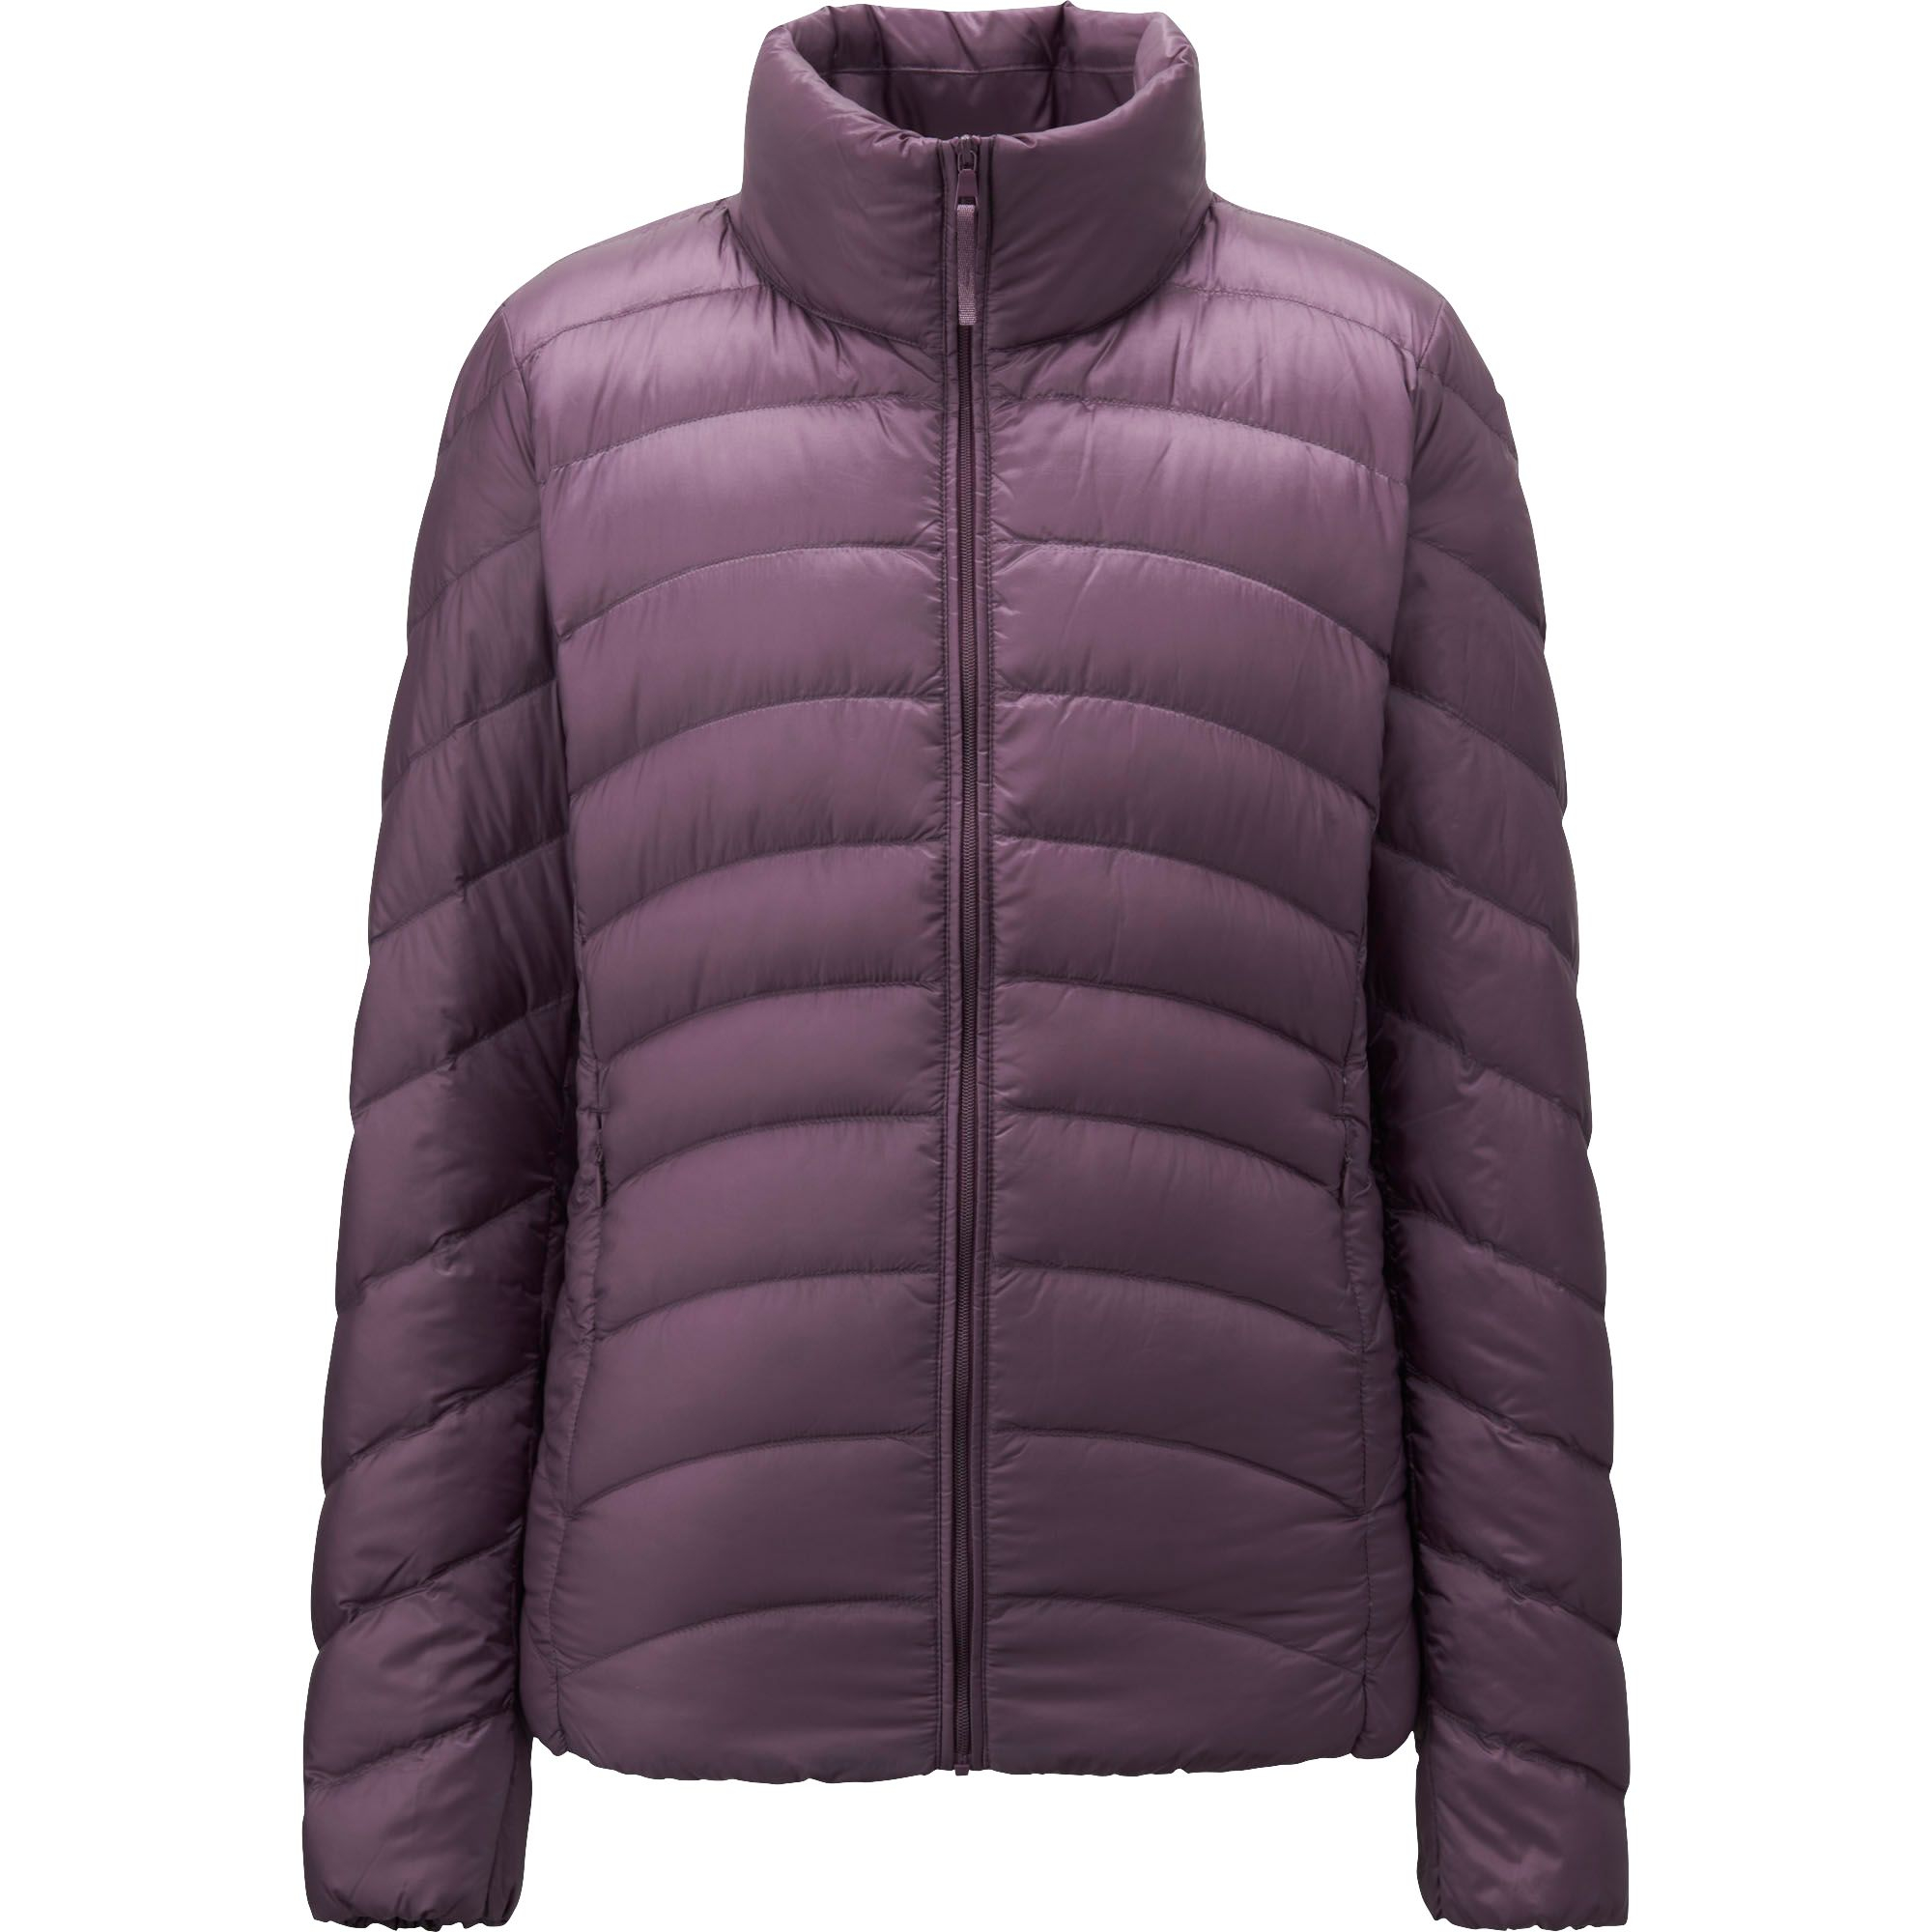 uniqlo ultra light down jacket in purple. Black Bedroom Furniture Sets. Home Design Ideas